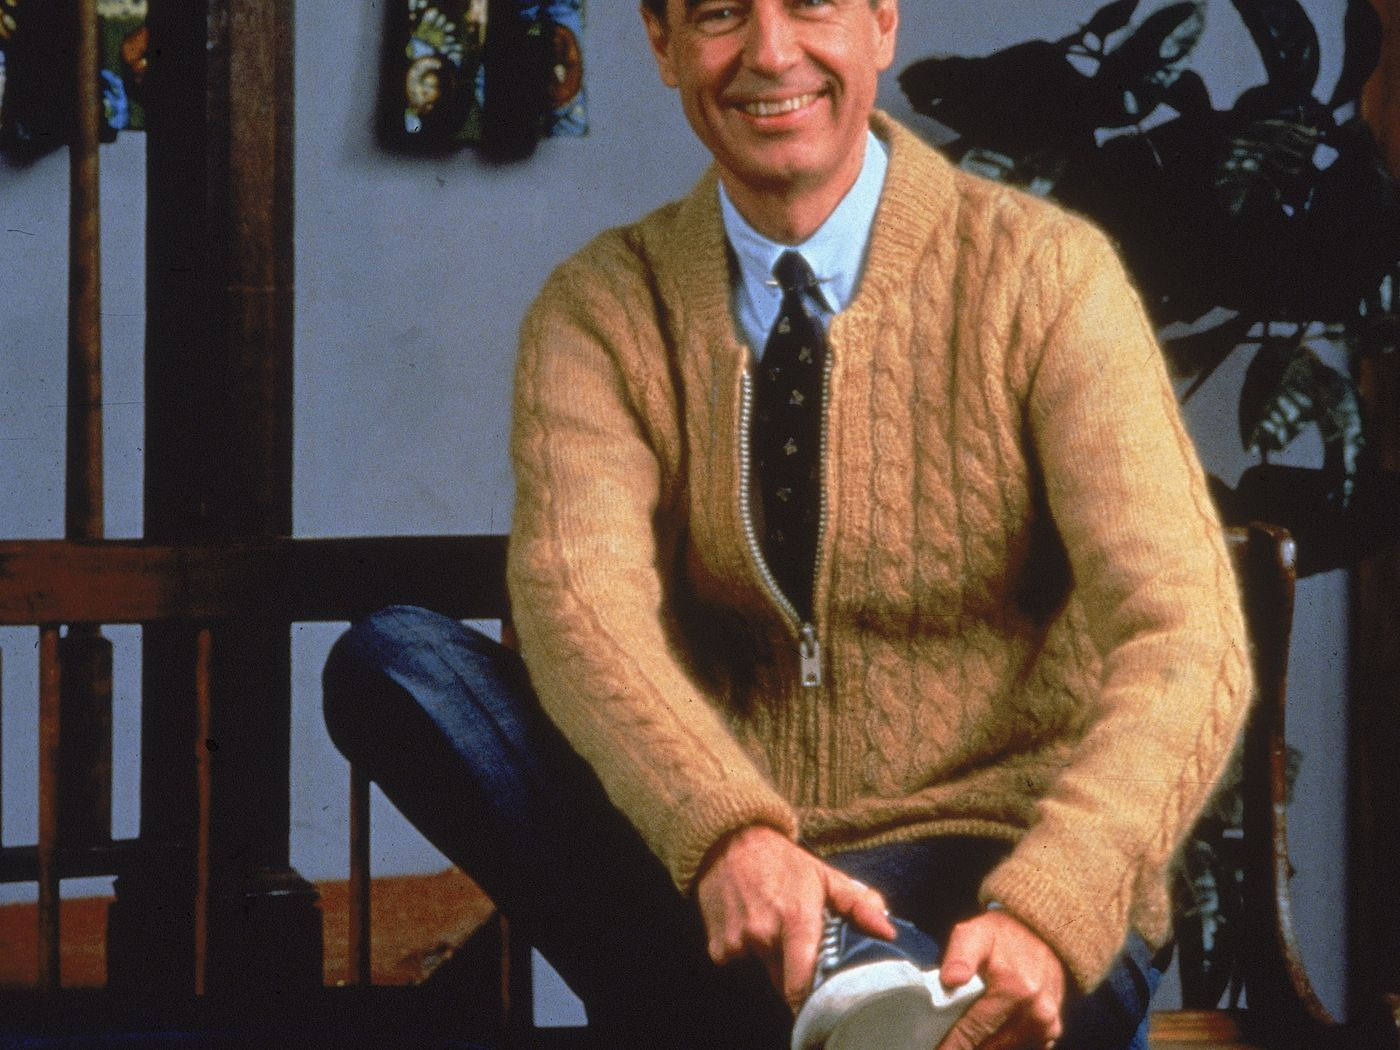 Won T You Be My Neighbor And The Fashion Of Mr Rogers Racked